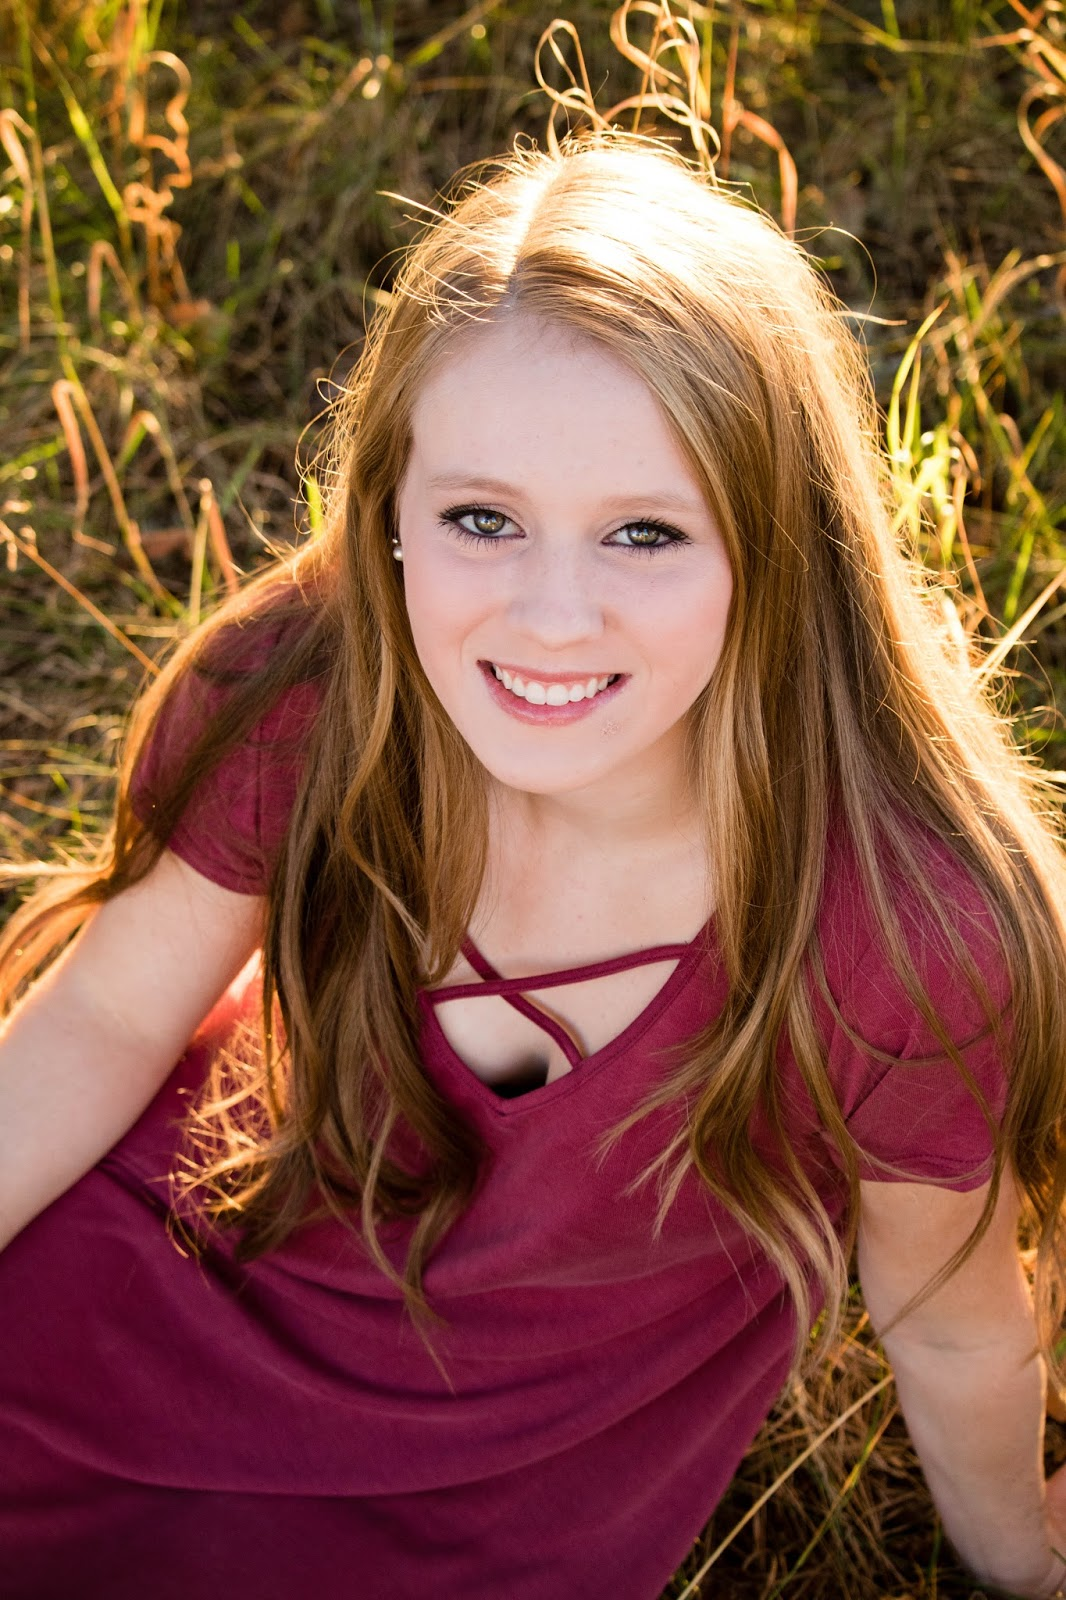 tacoma senior personals Meet senior singles in tacoma, washington online & connect in the chat rooms dhu is a 100% free dating site for senior dating in tacoma.